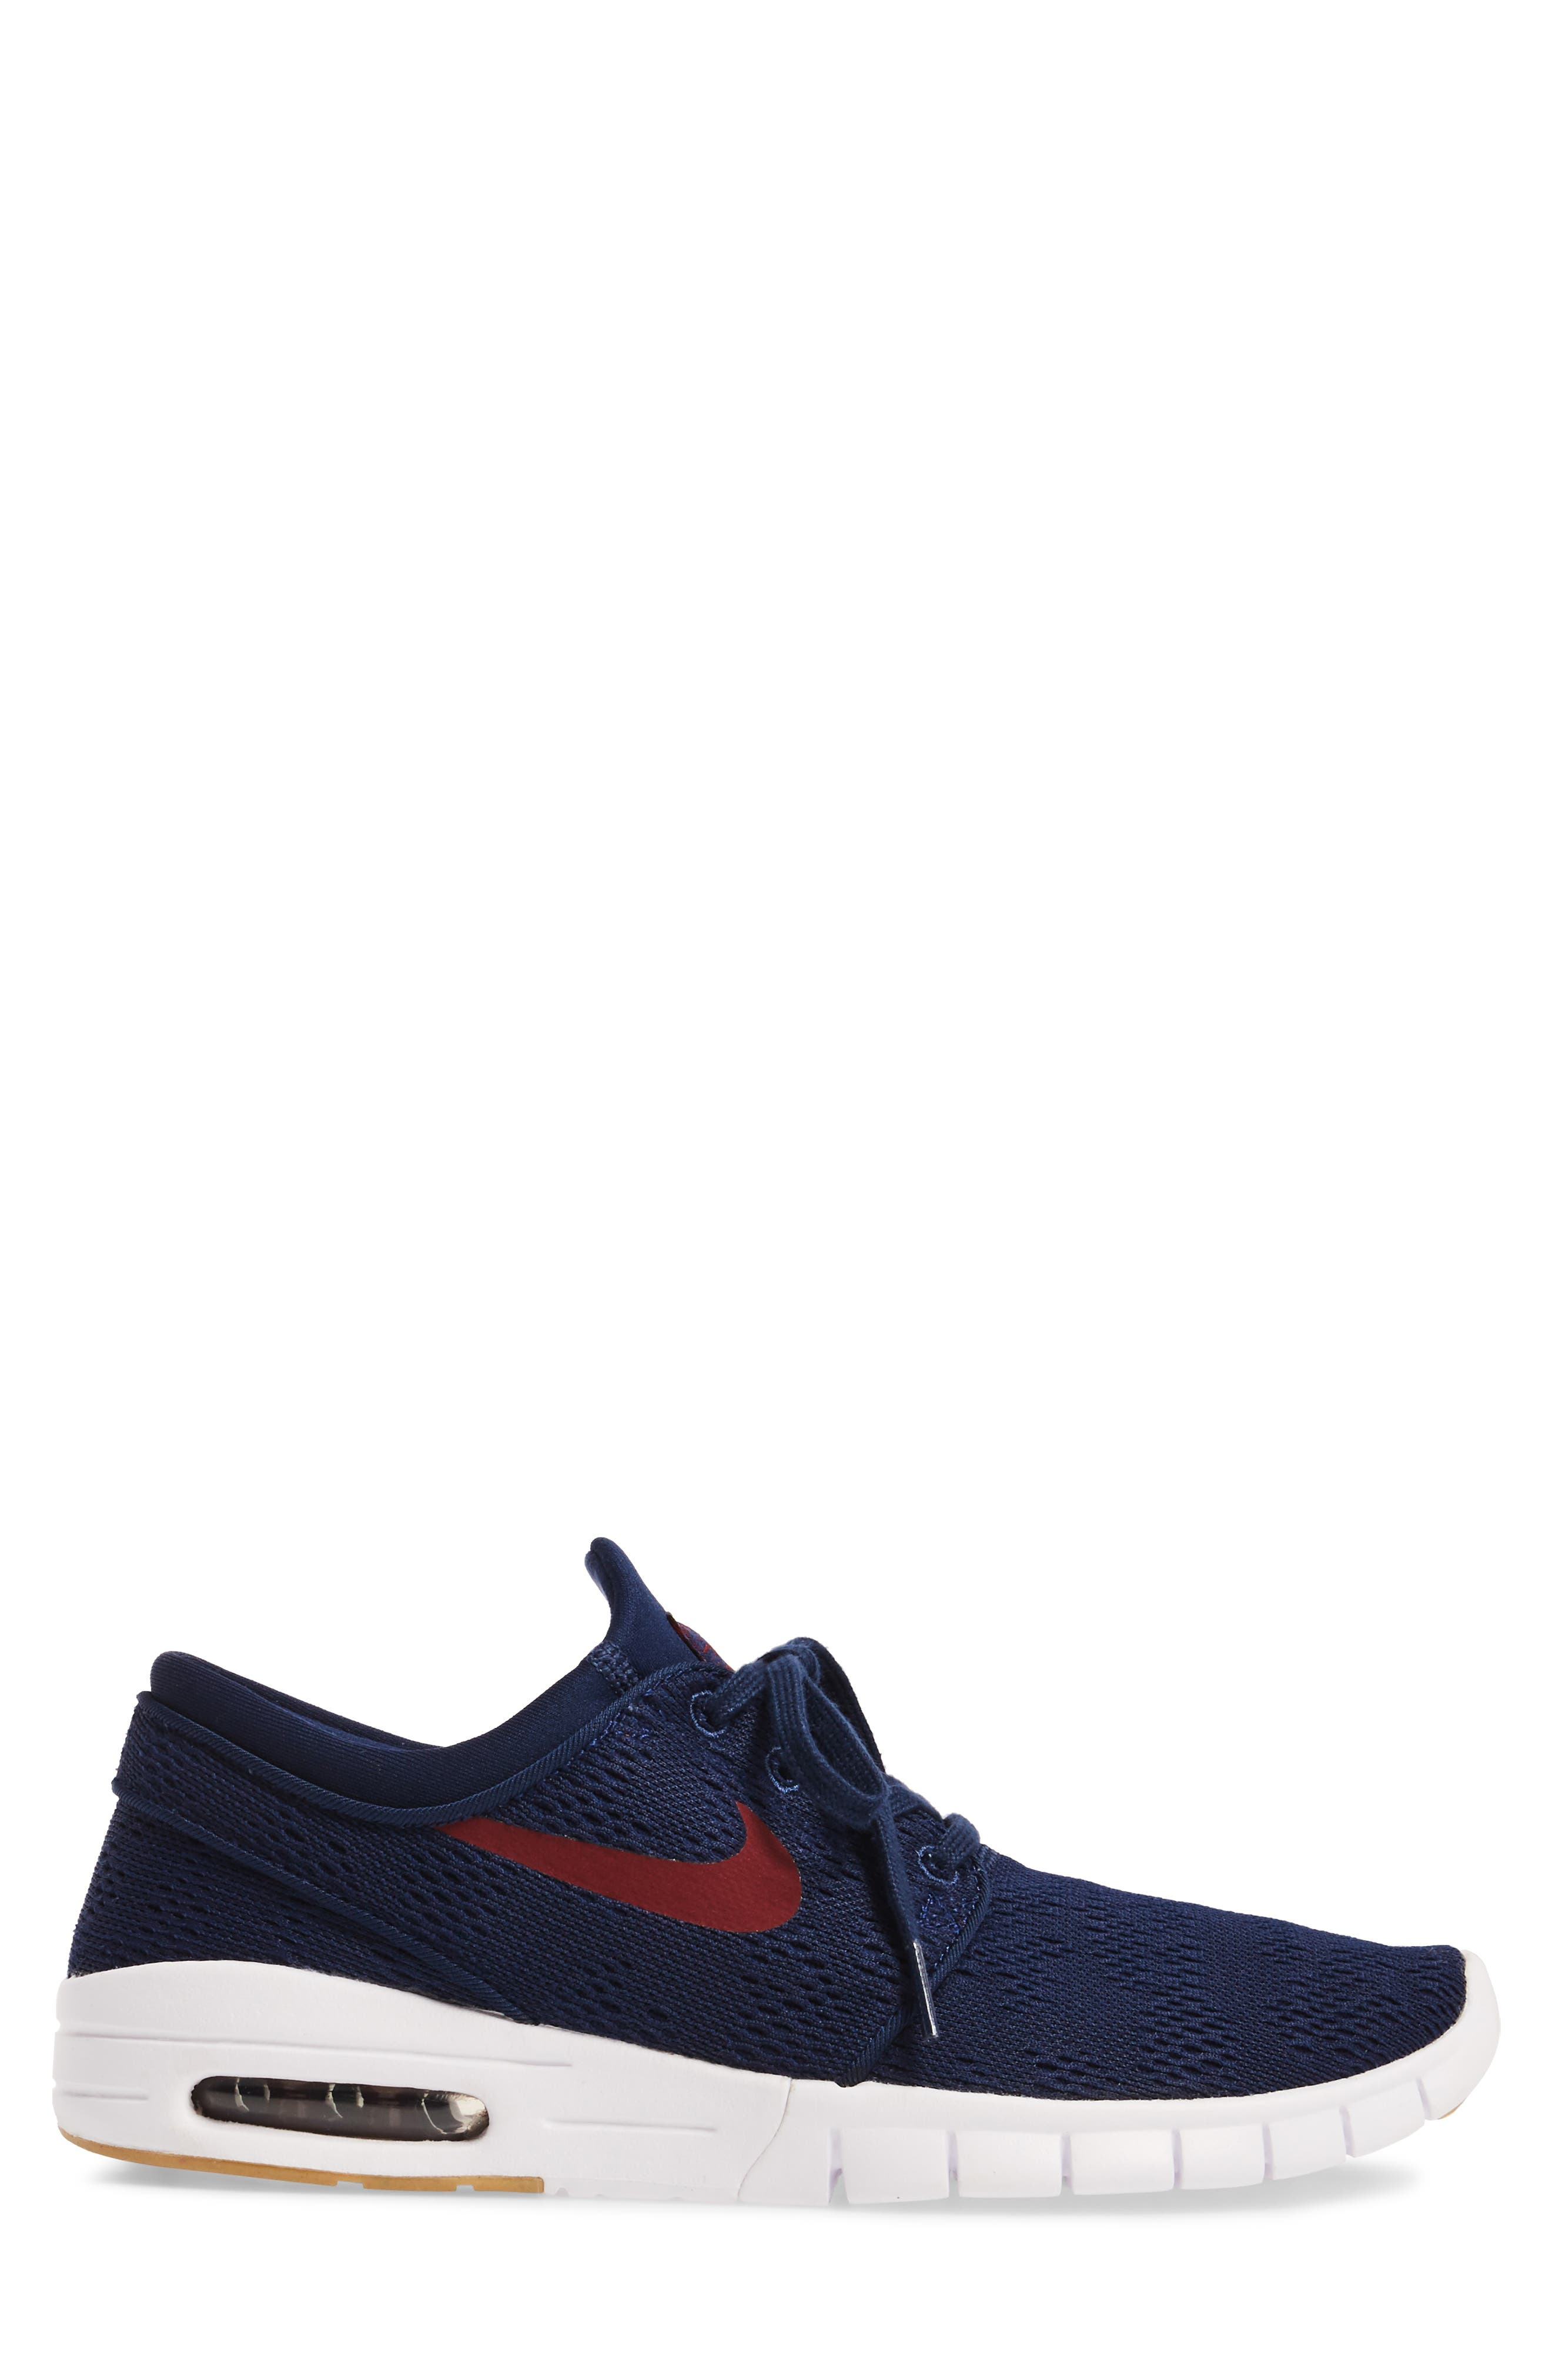 Alternate Image 3  - Nike 'Stefan Janoski - Max SB' Skate Shoe (Men)